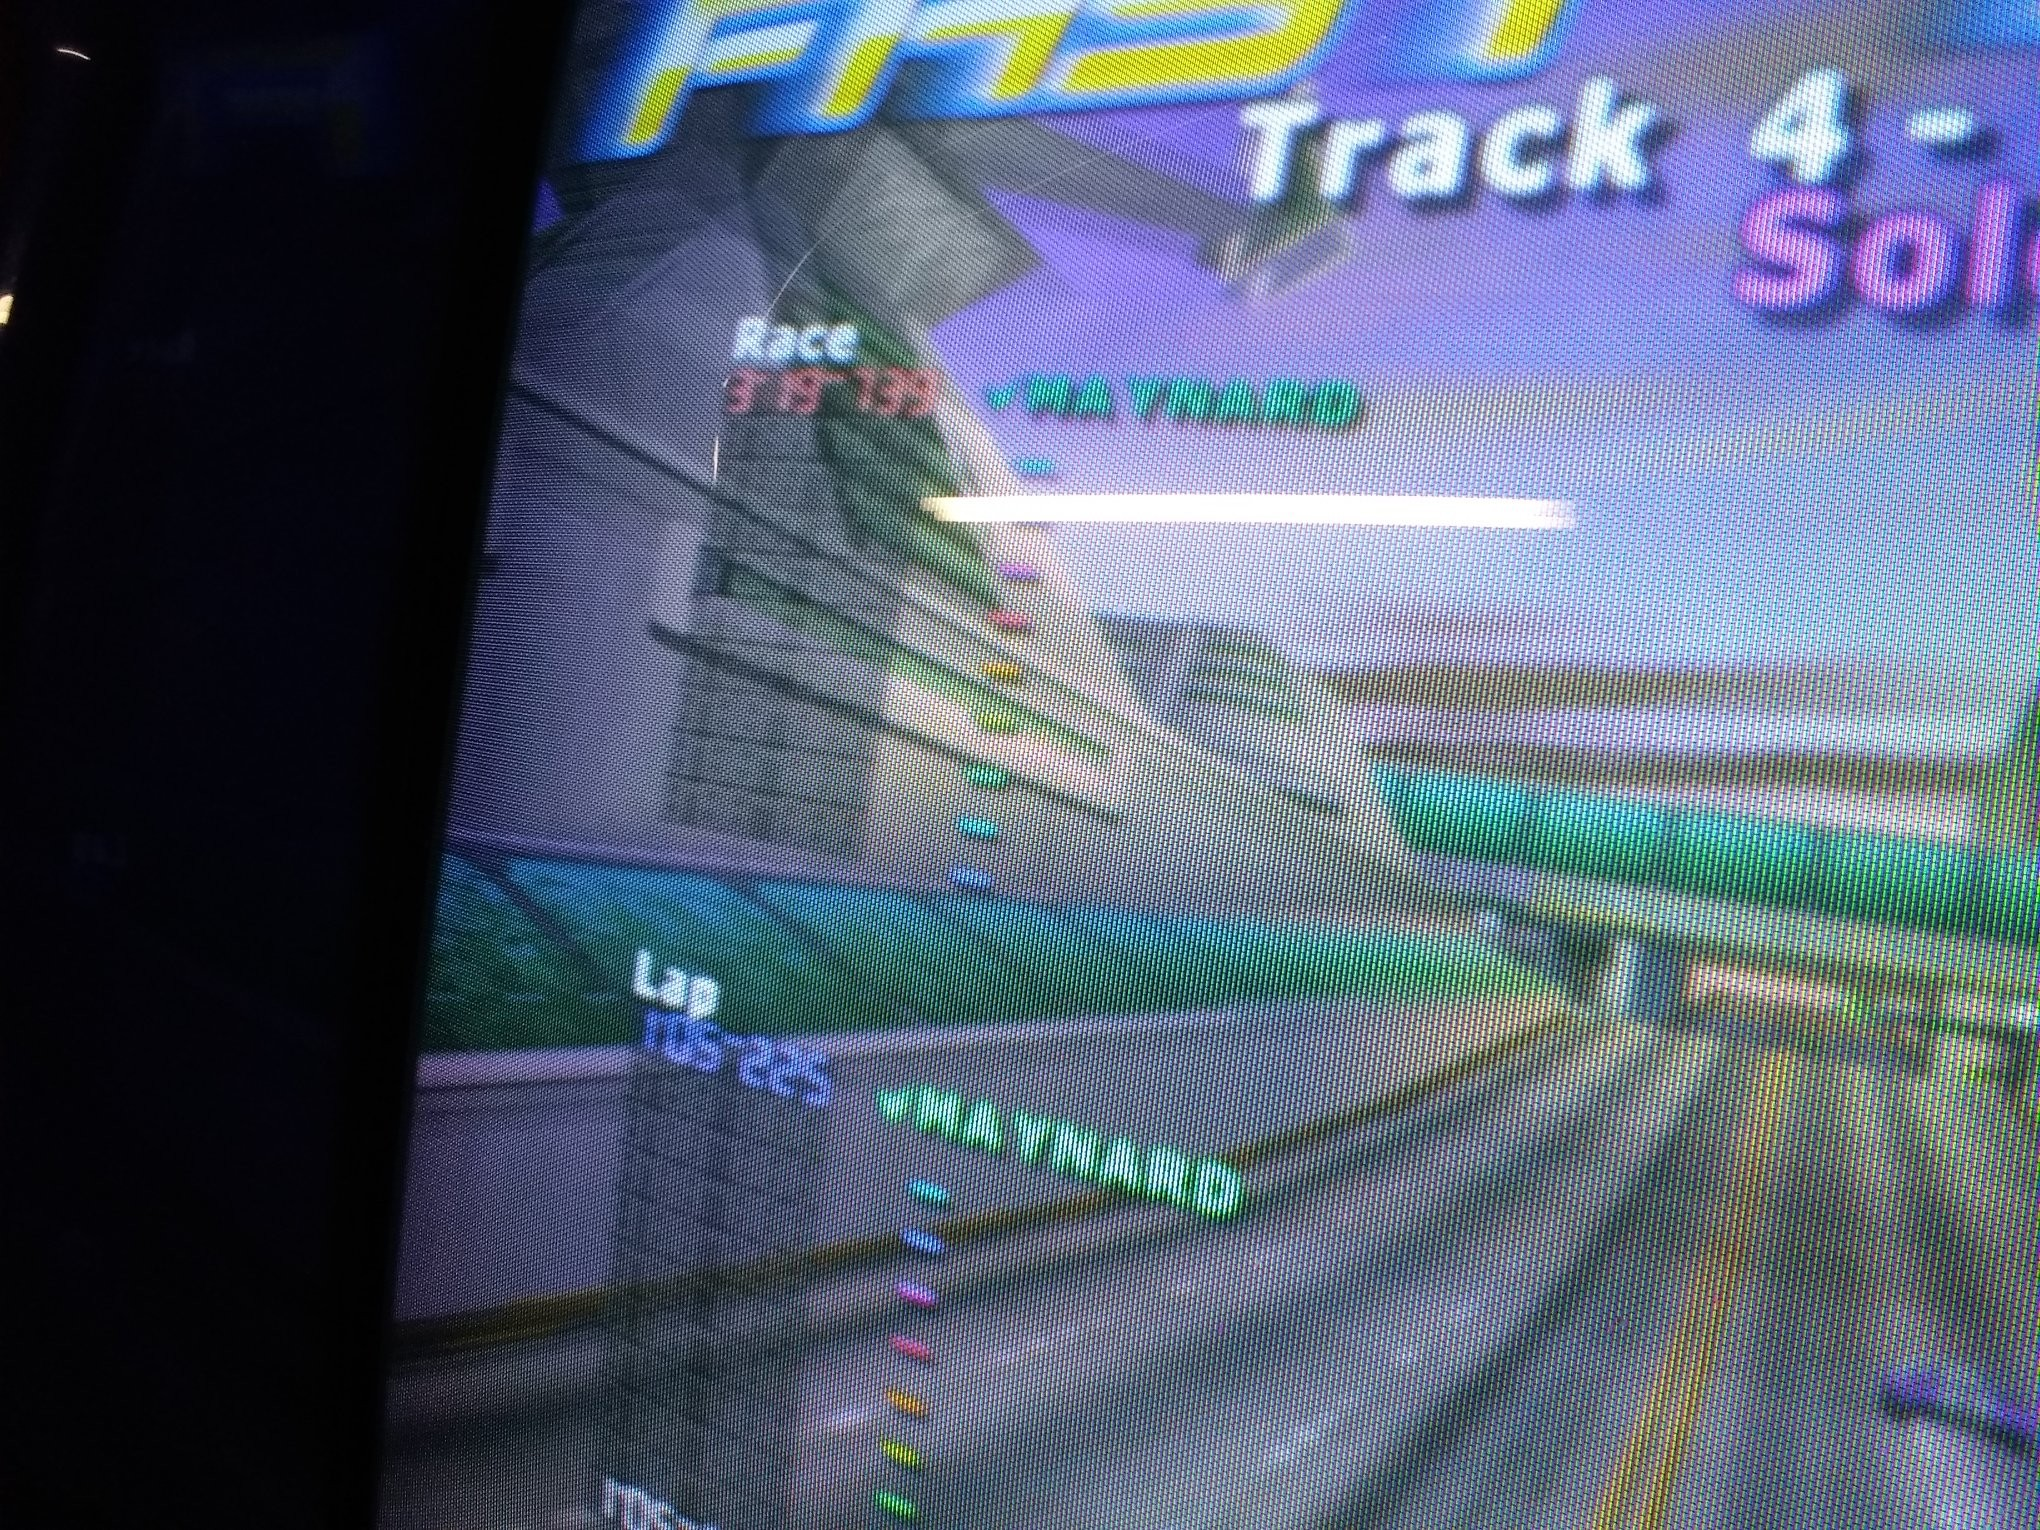 San Francisco Rush 2049: Special Edition [Track 4] [No Codes] time of 0:03:19.739